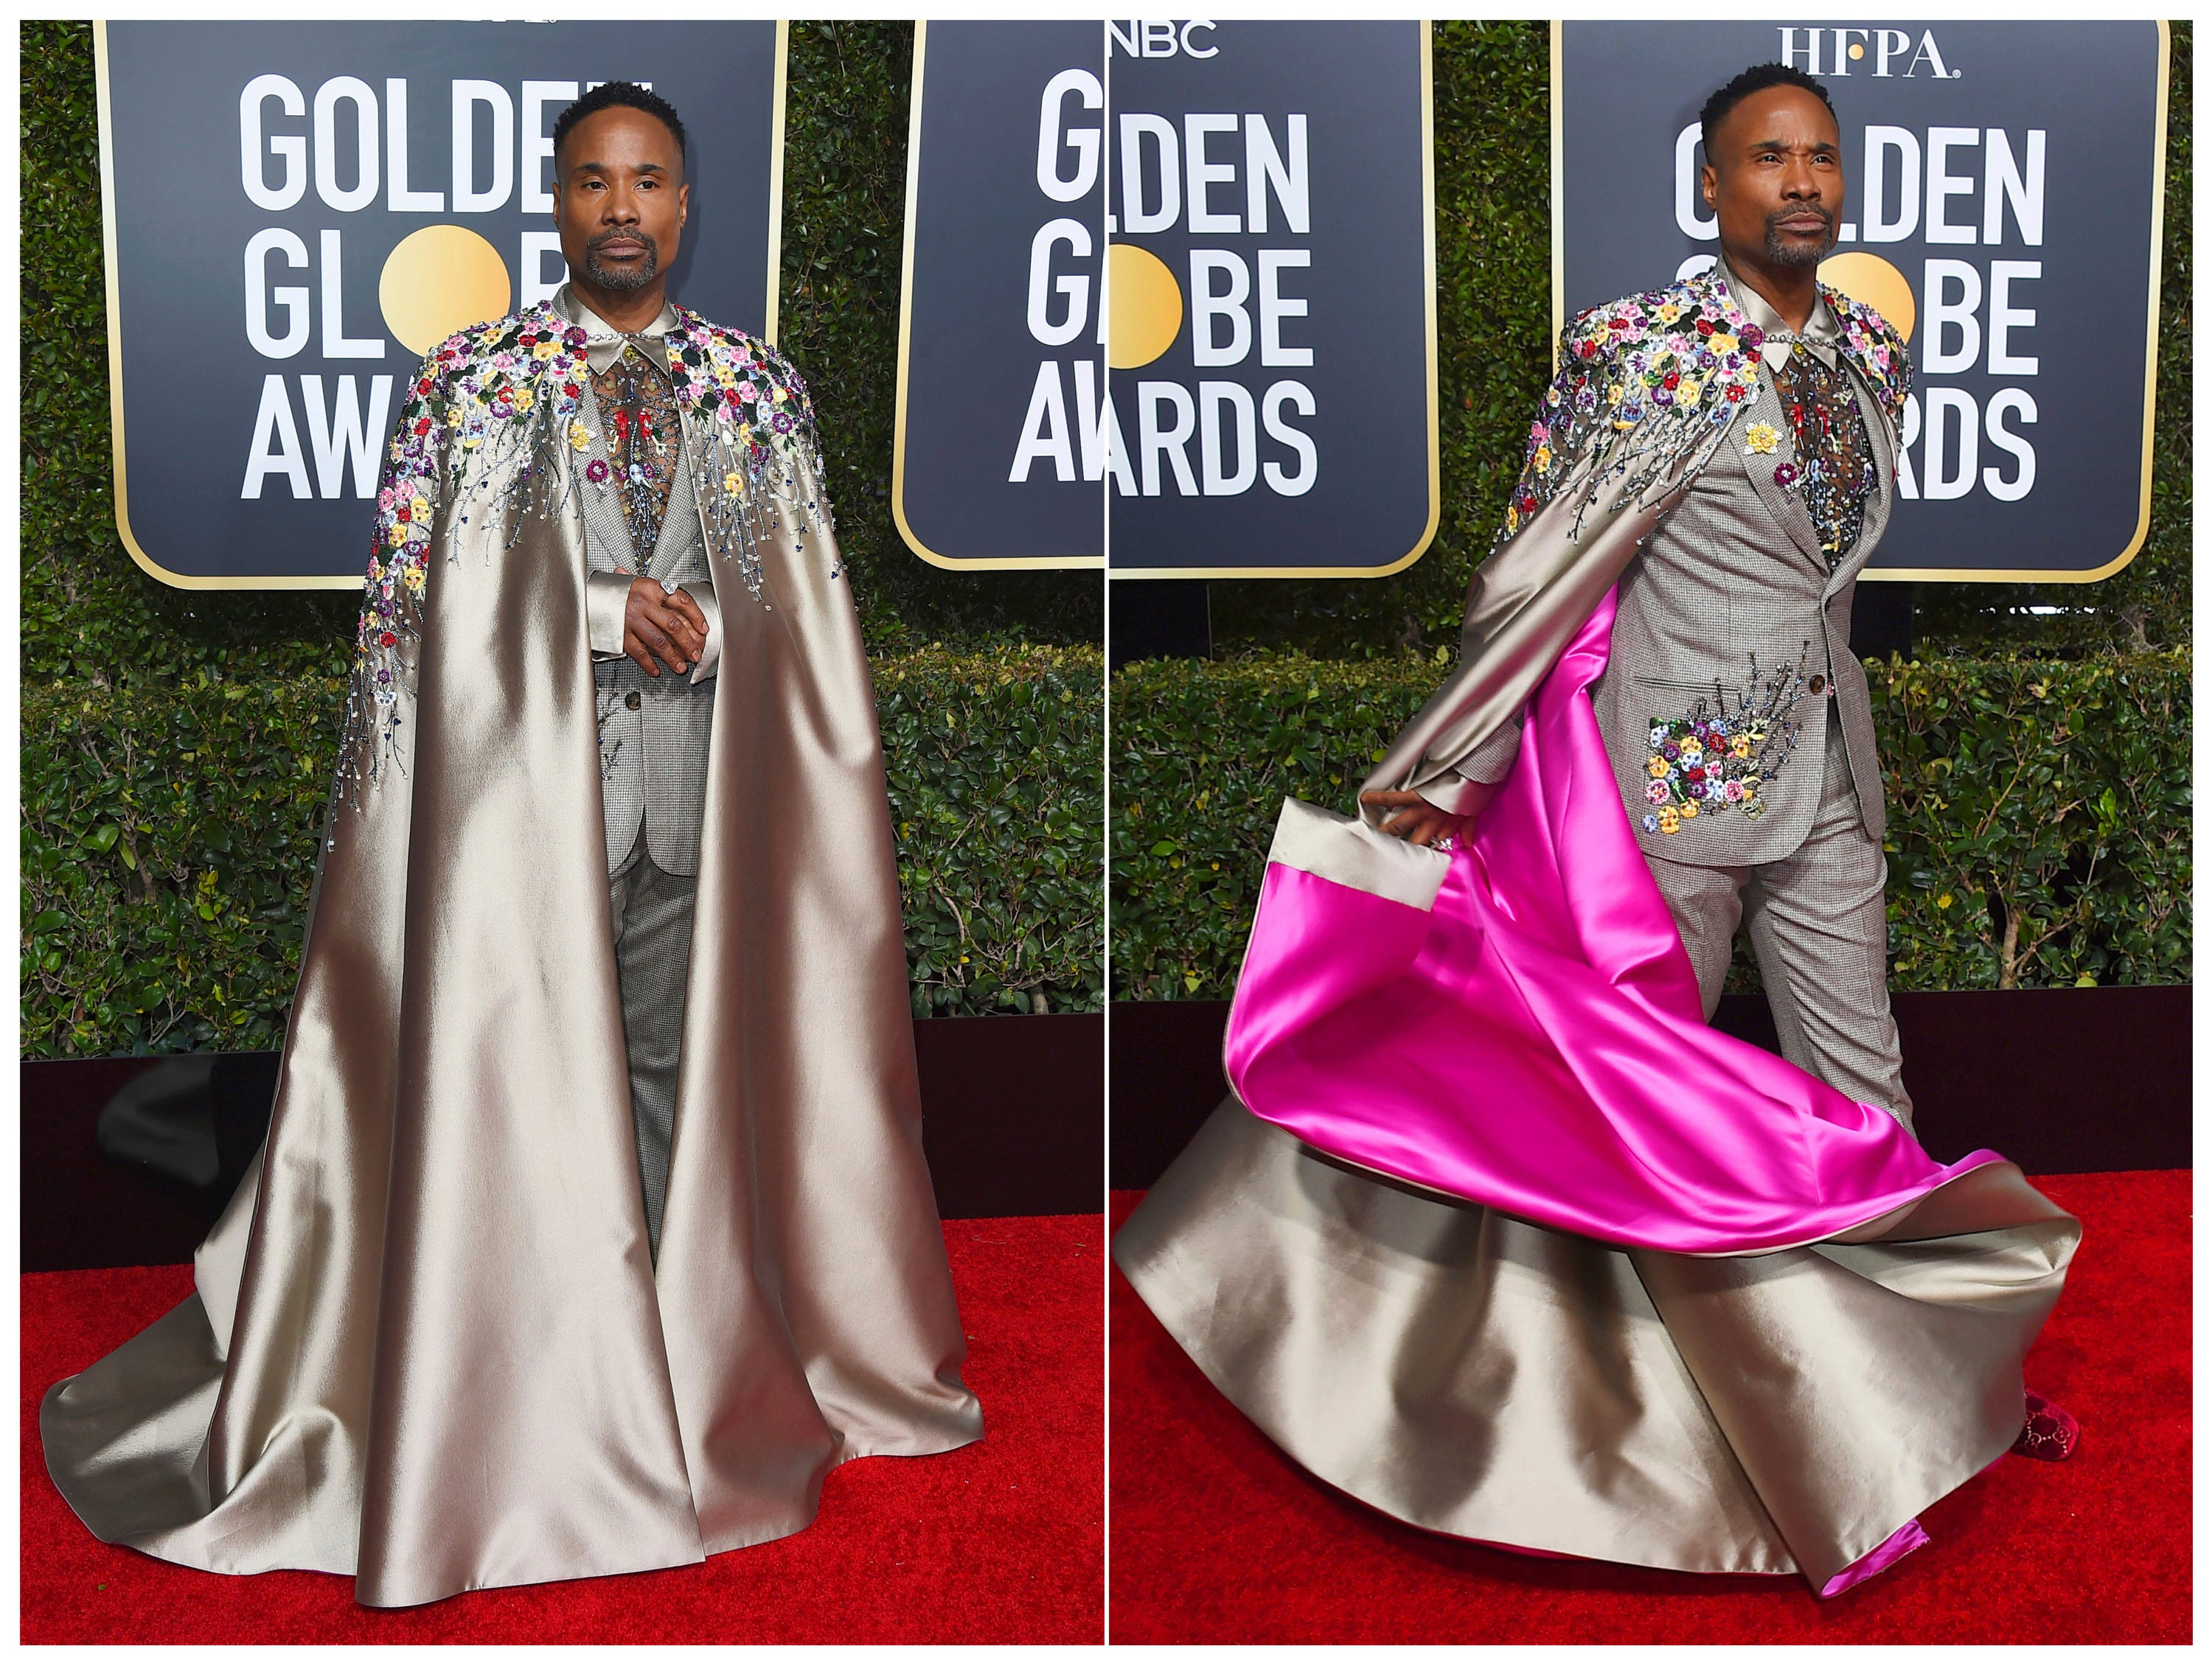 Billy Porter Speaks On Social Media Hate His Oscars Gown Received